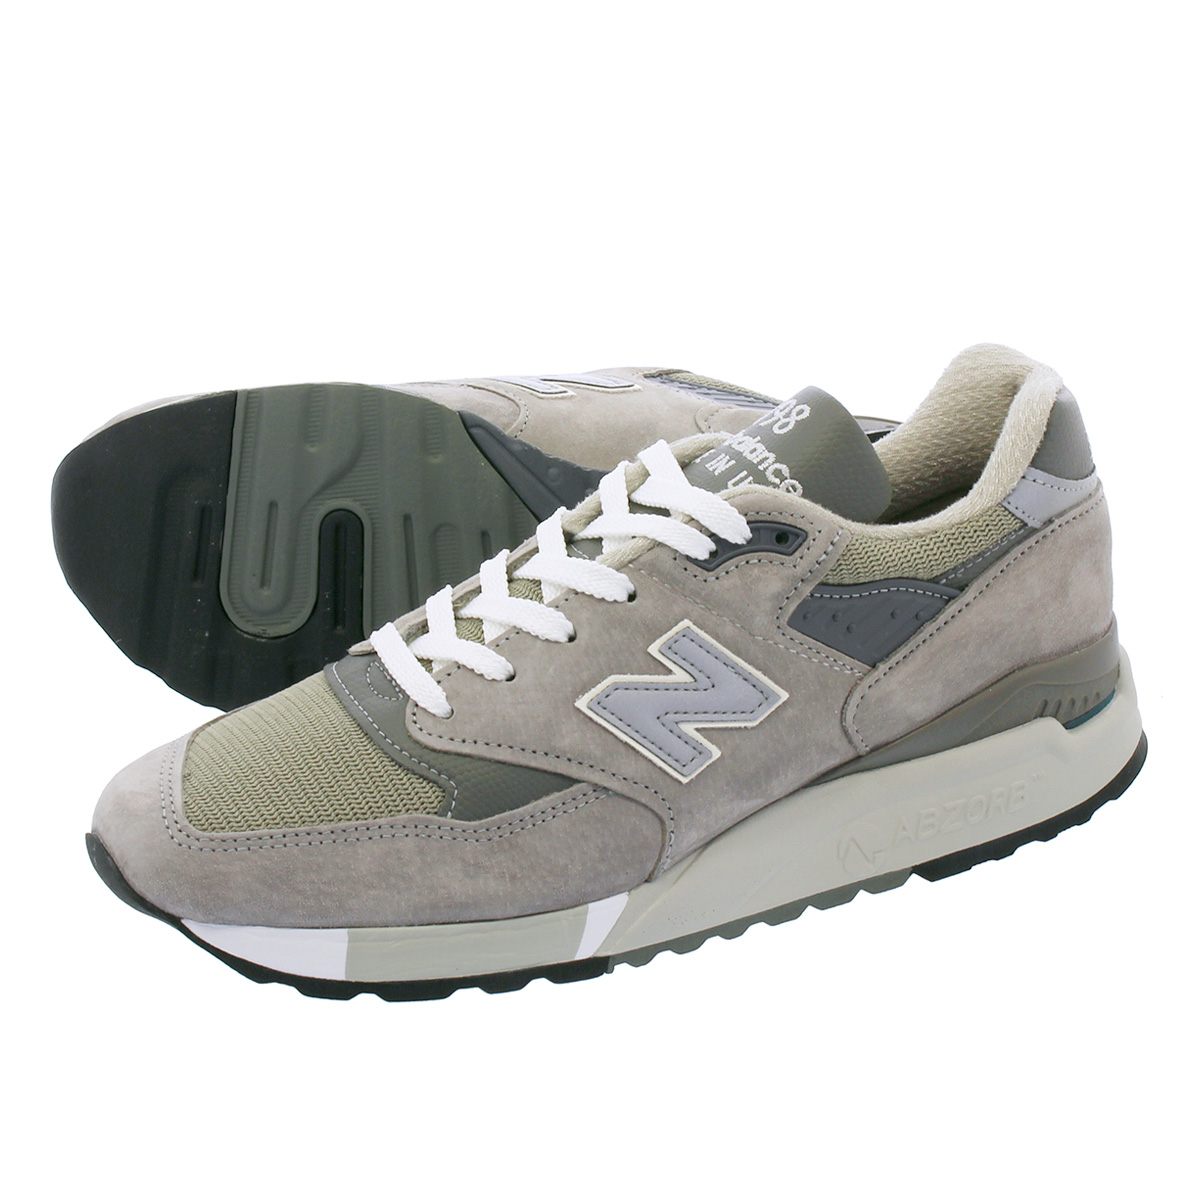 NEW BALANCE M998GY 【MADE IN U.S.A.】 【Dワイズ】 ニューバランス M998GY GREY